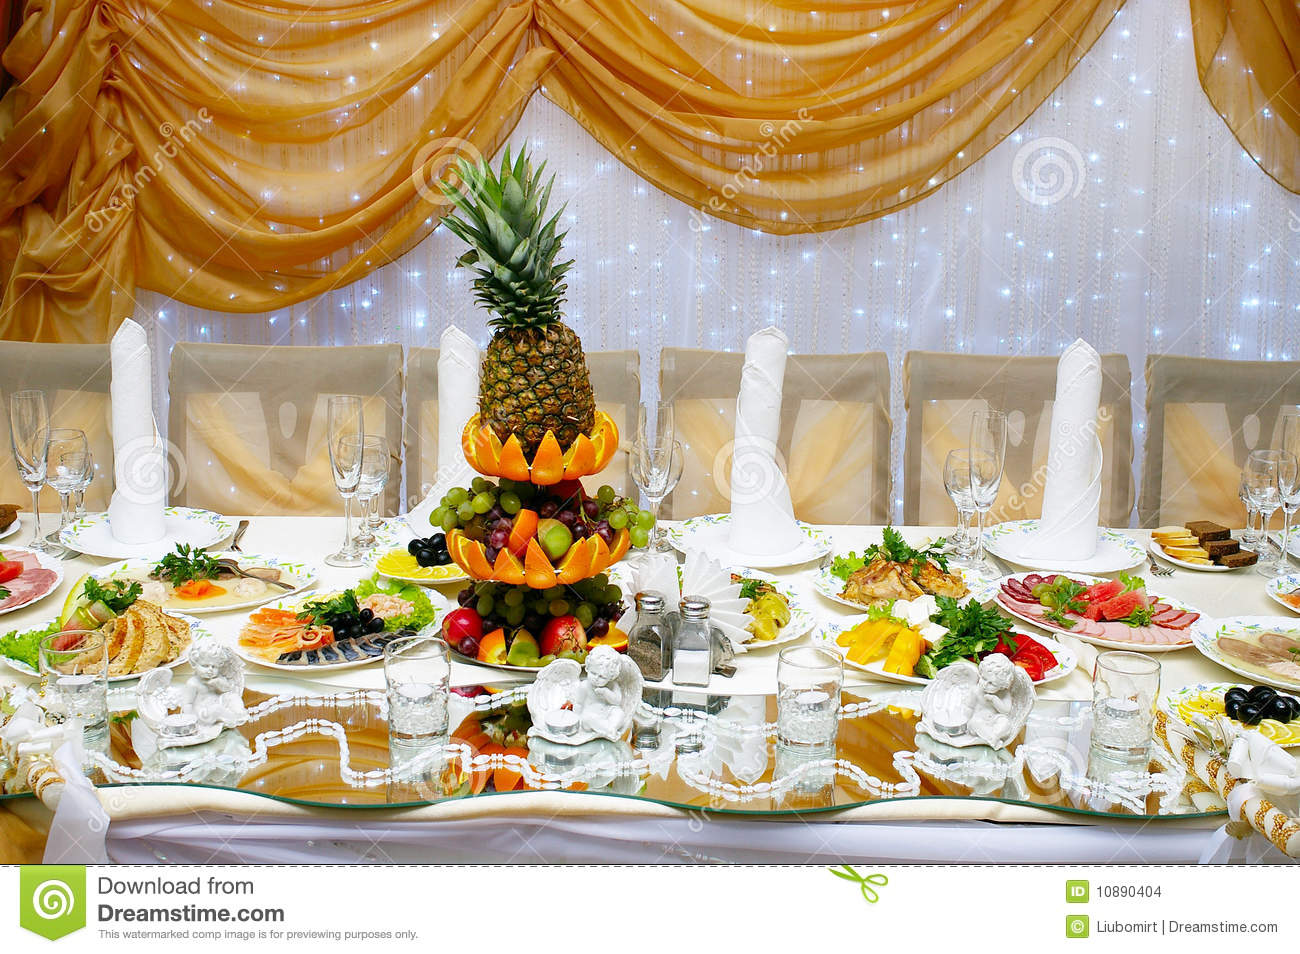 wedding reception table with food